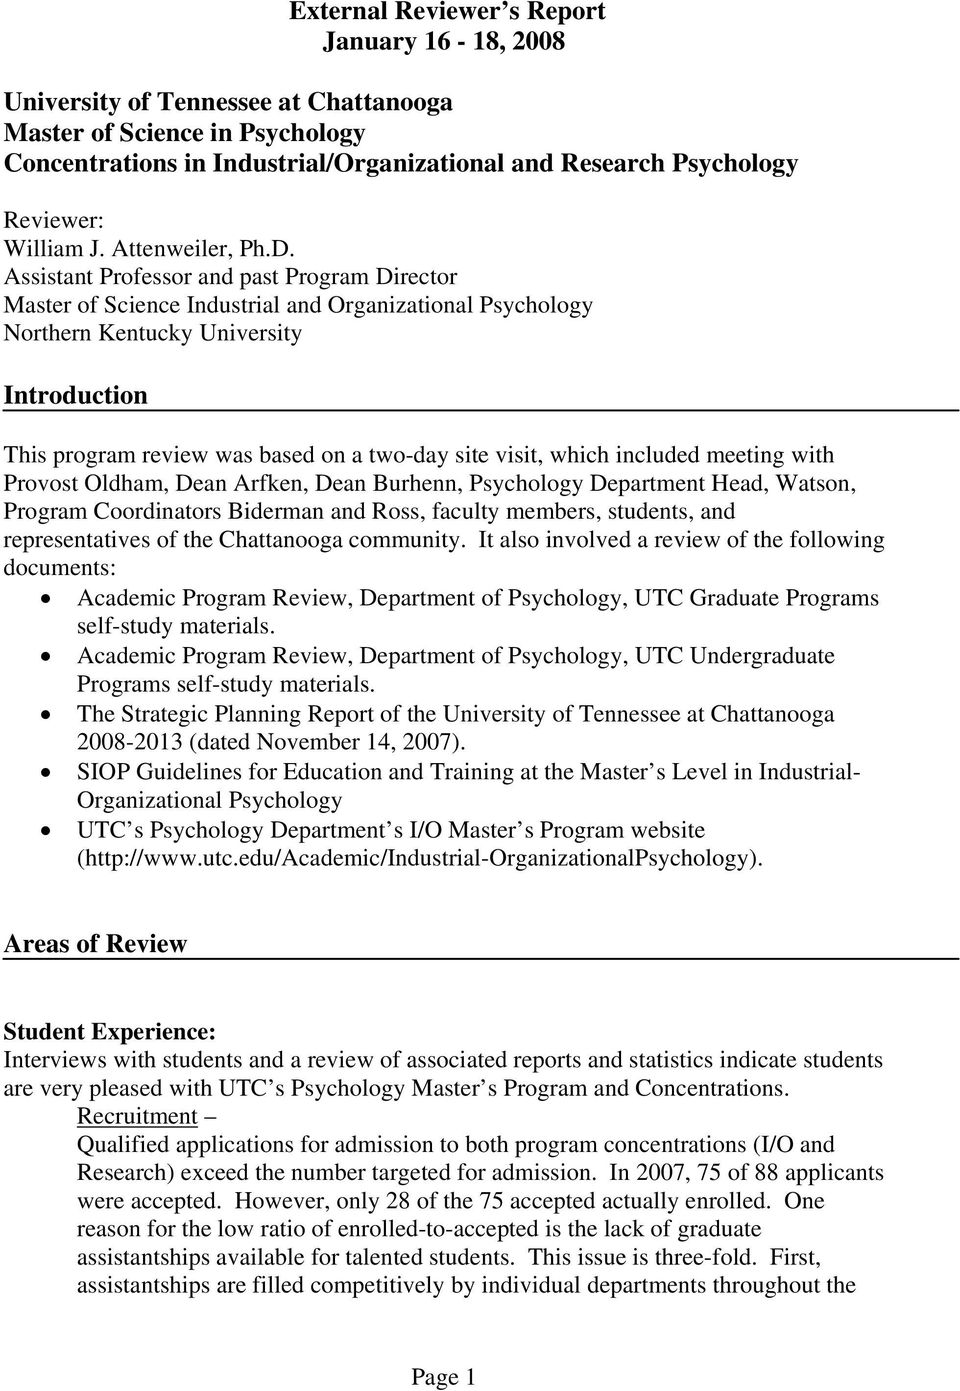 Assistant Professor and past Program Director Master of Science Industrial and Organizational Psychology Northern Kentucky University Introduction This program review was based on a two-day site